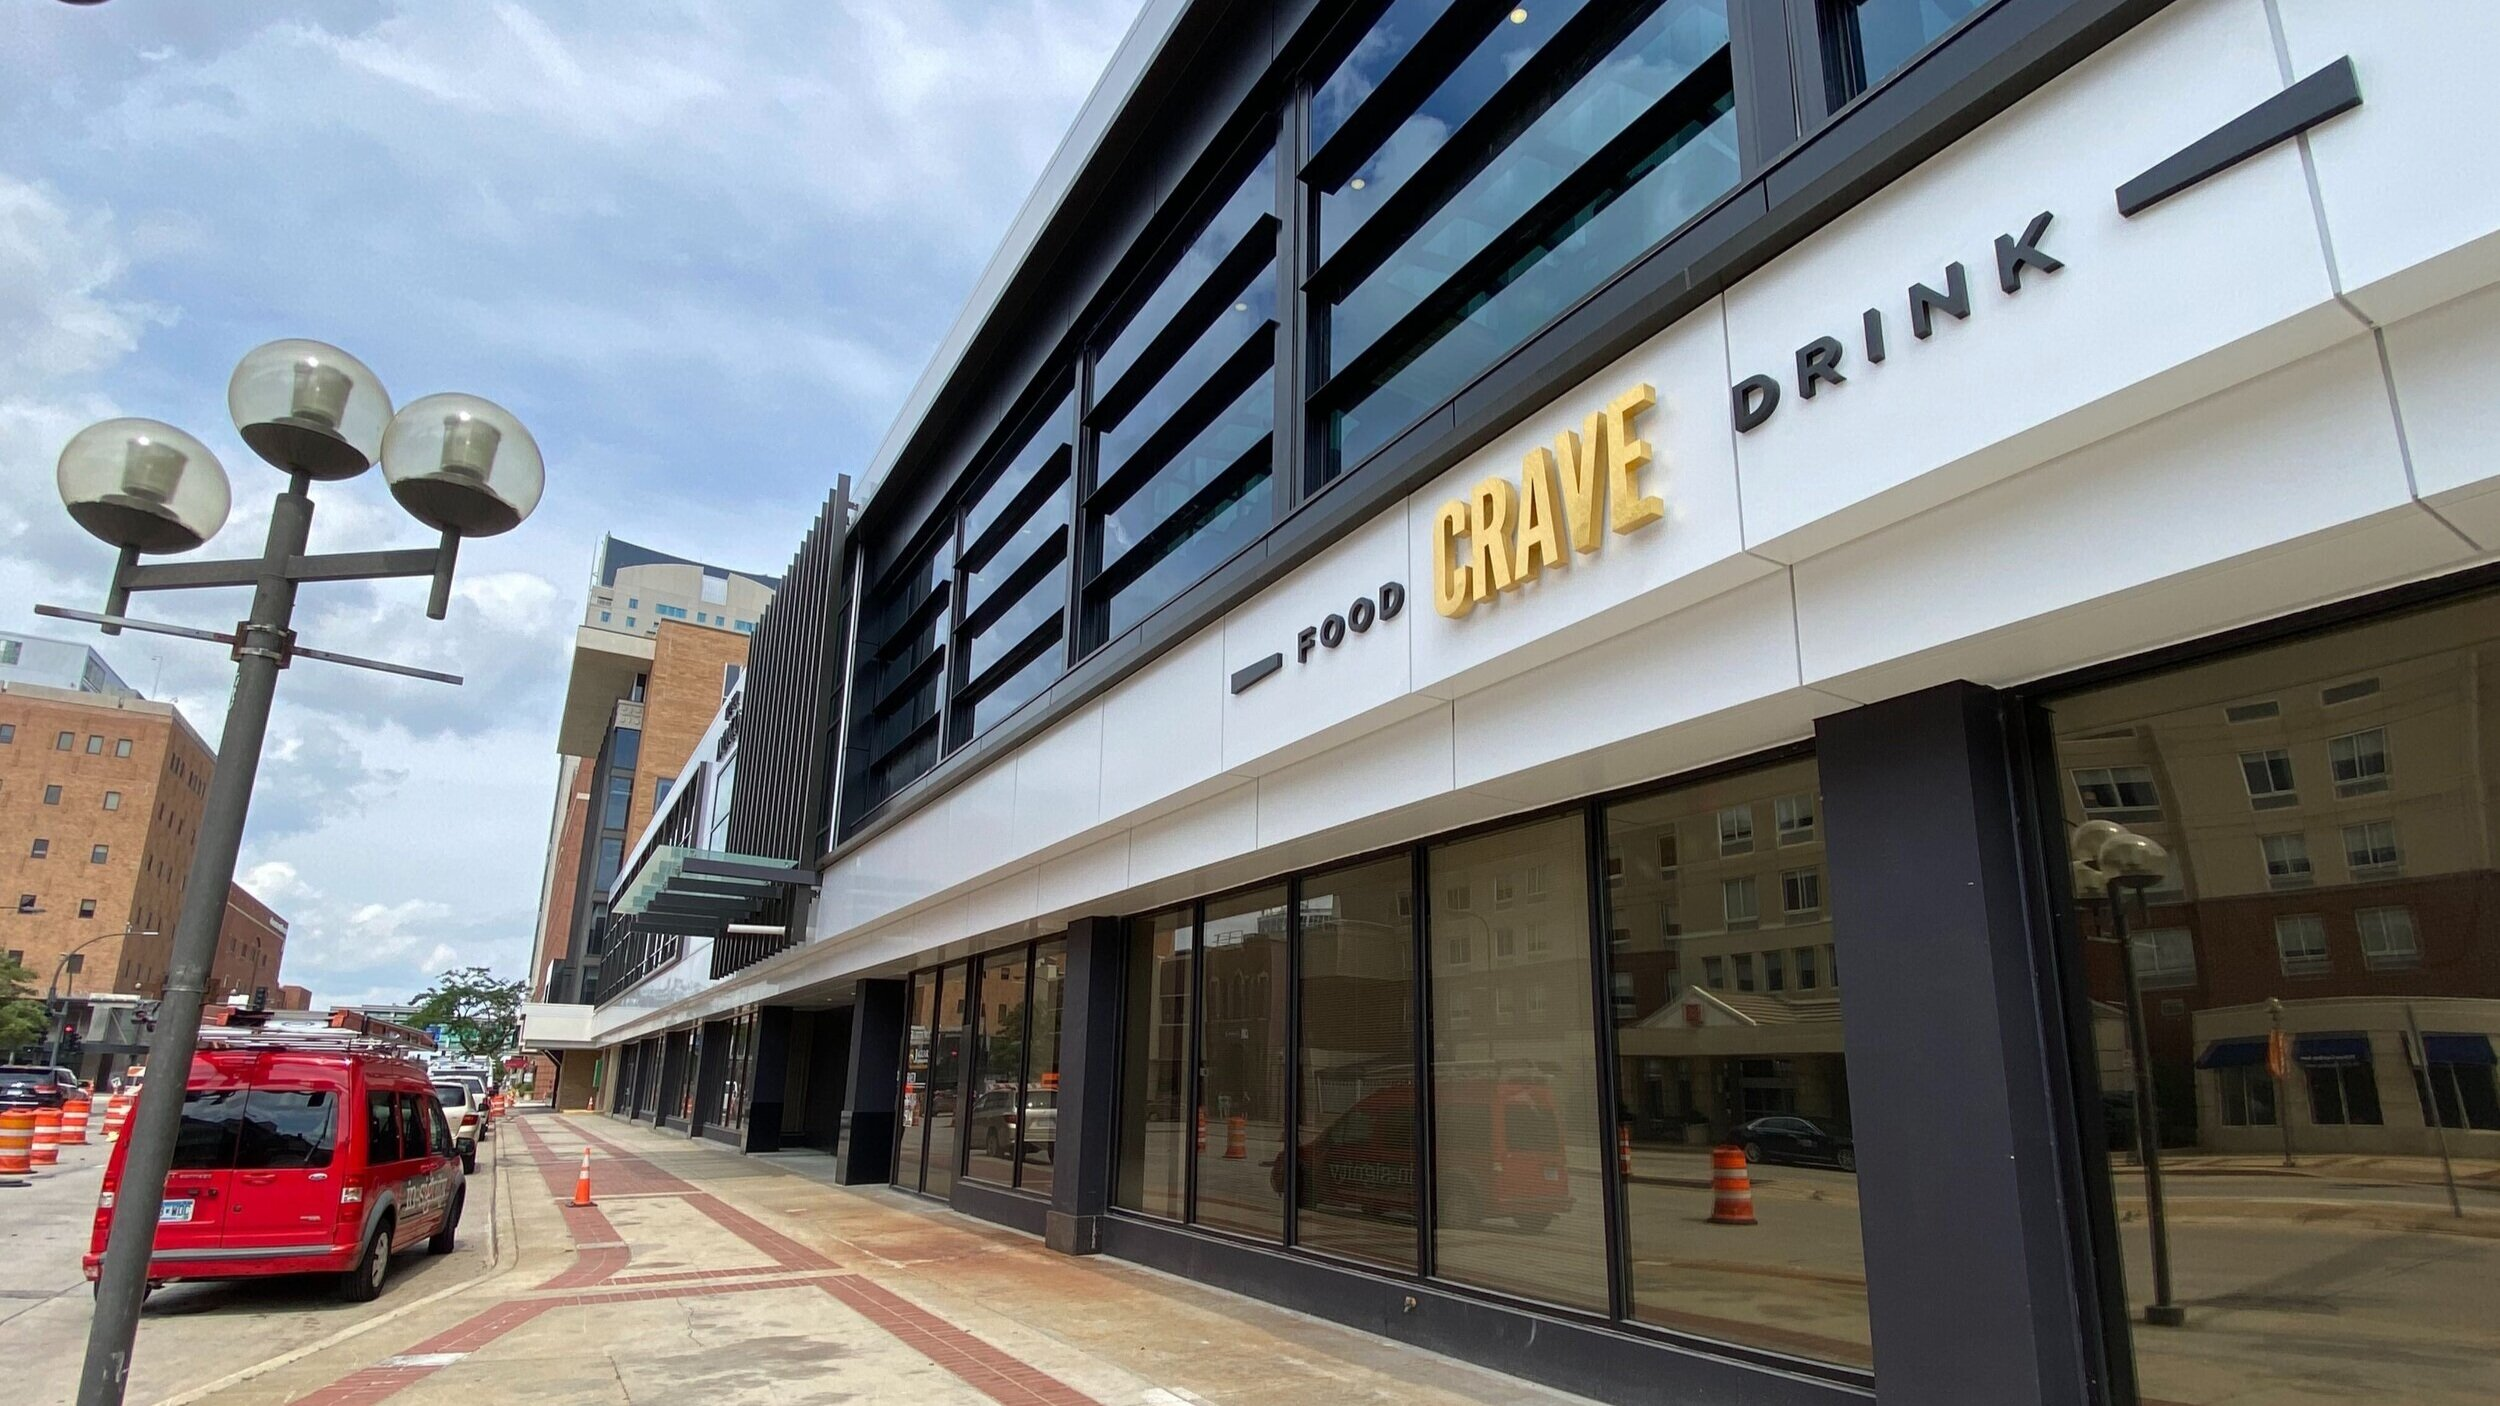 Restarurants Open Christmas Eve And Day 2020 Rochester Mn Crave pushes ahead with plans for Rochester opening